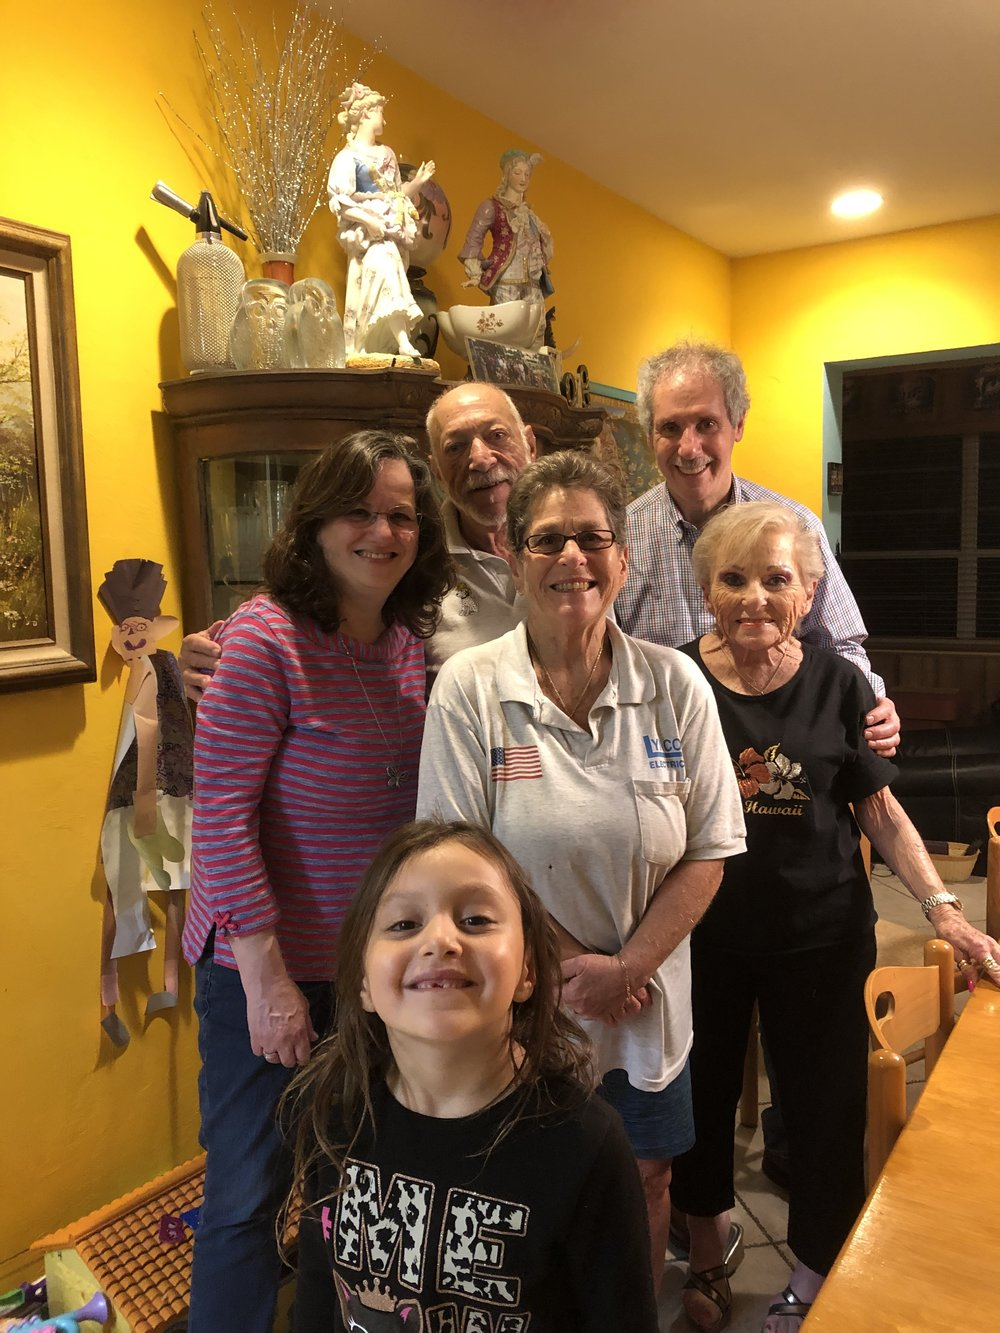 At the Koppele/Lynn's North Miami Beach, Florida February 13, 2019 Sharon on left, Nita standing in front of Arnee on the right. Nita's daughter Susie in the middle with her husband, Jeffrey Lynn, a South Orange, New Jersey native behind and their granddaughter Jelisa (Jeli) in front.